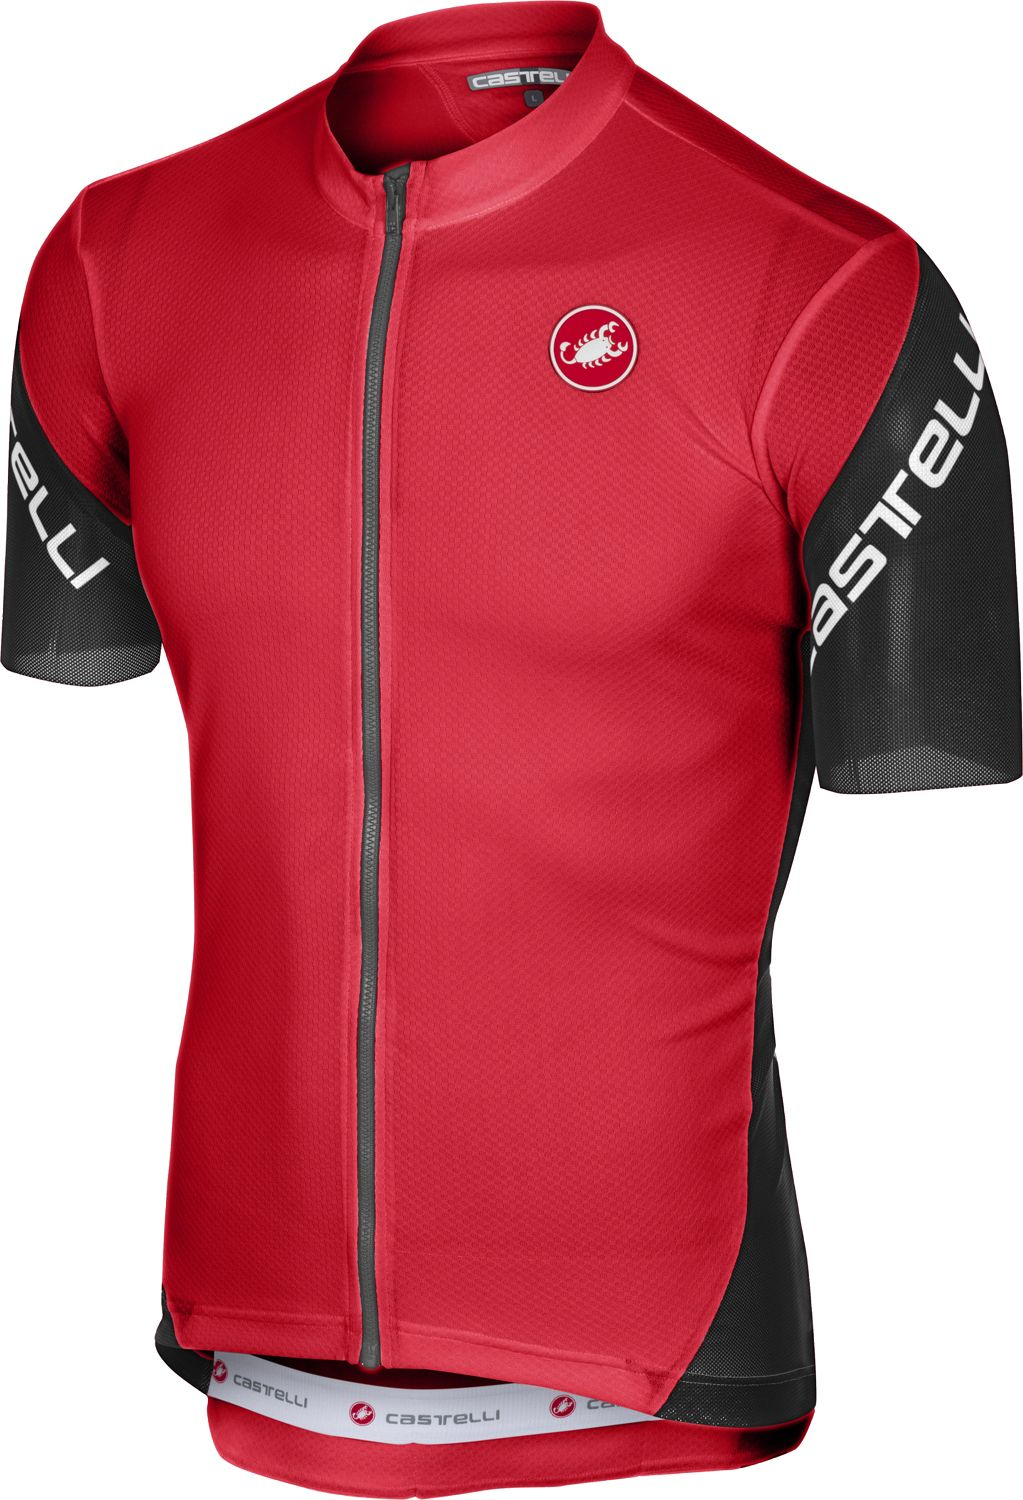 ... cycling jersey red. Previous fb591fdd6